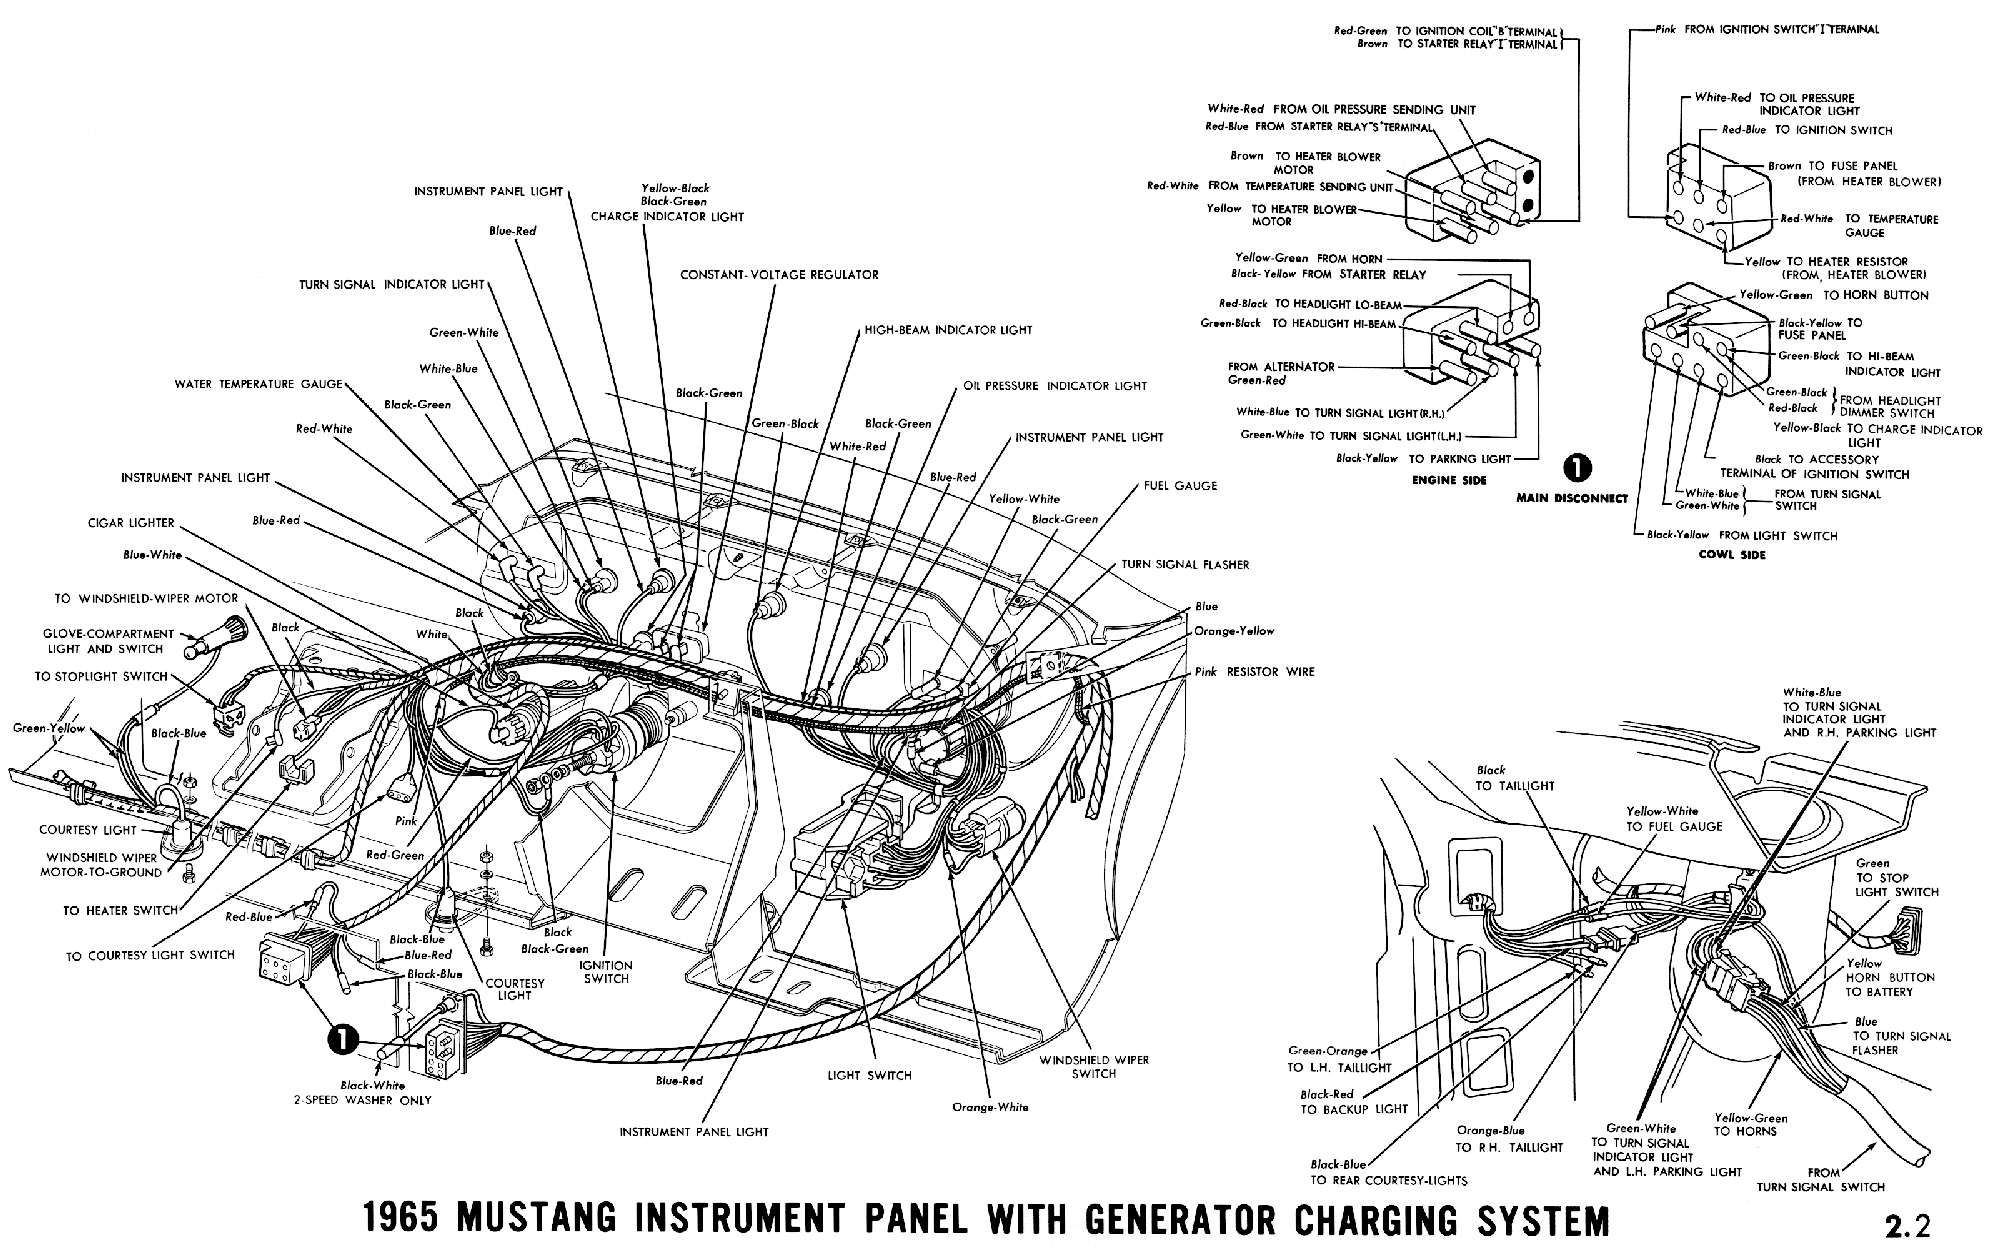 1965 mustang instrument panel with alternator charging system pictorial instrument cluster connections wiper switch headlamp switch ignition switch and  [ 2000 x 1247 Pixel ]